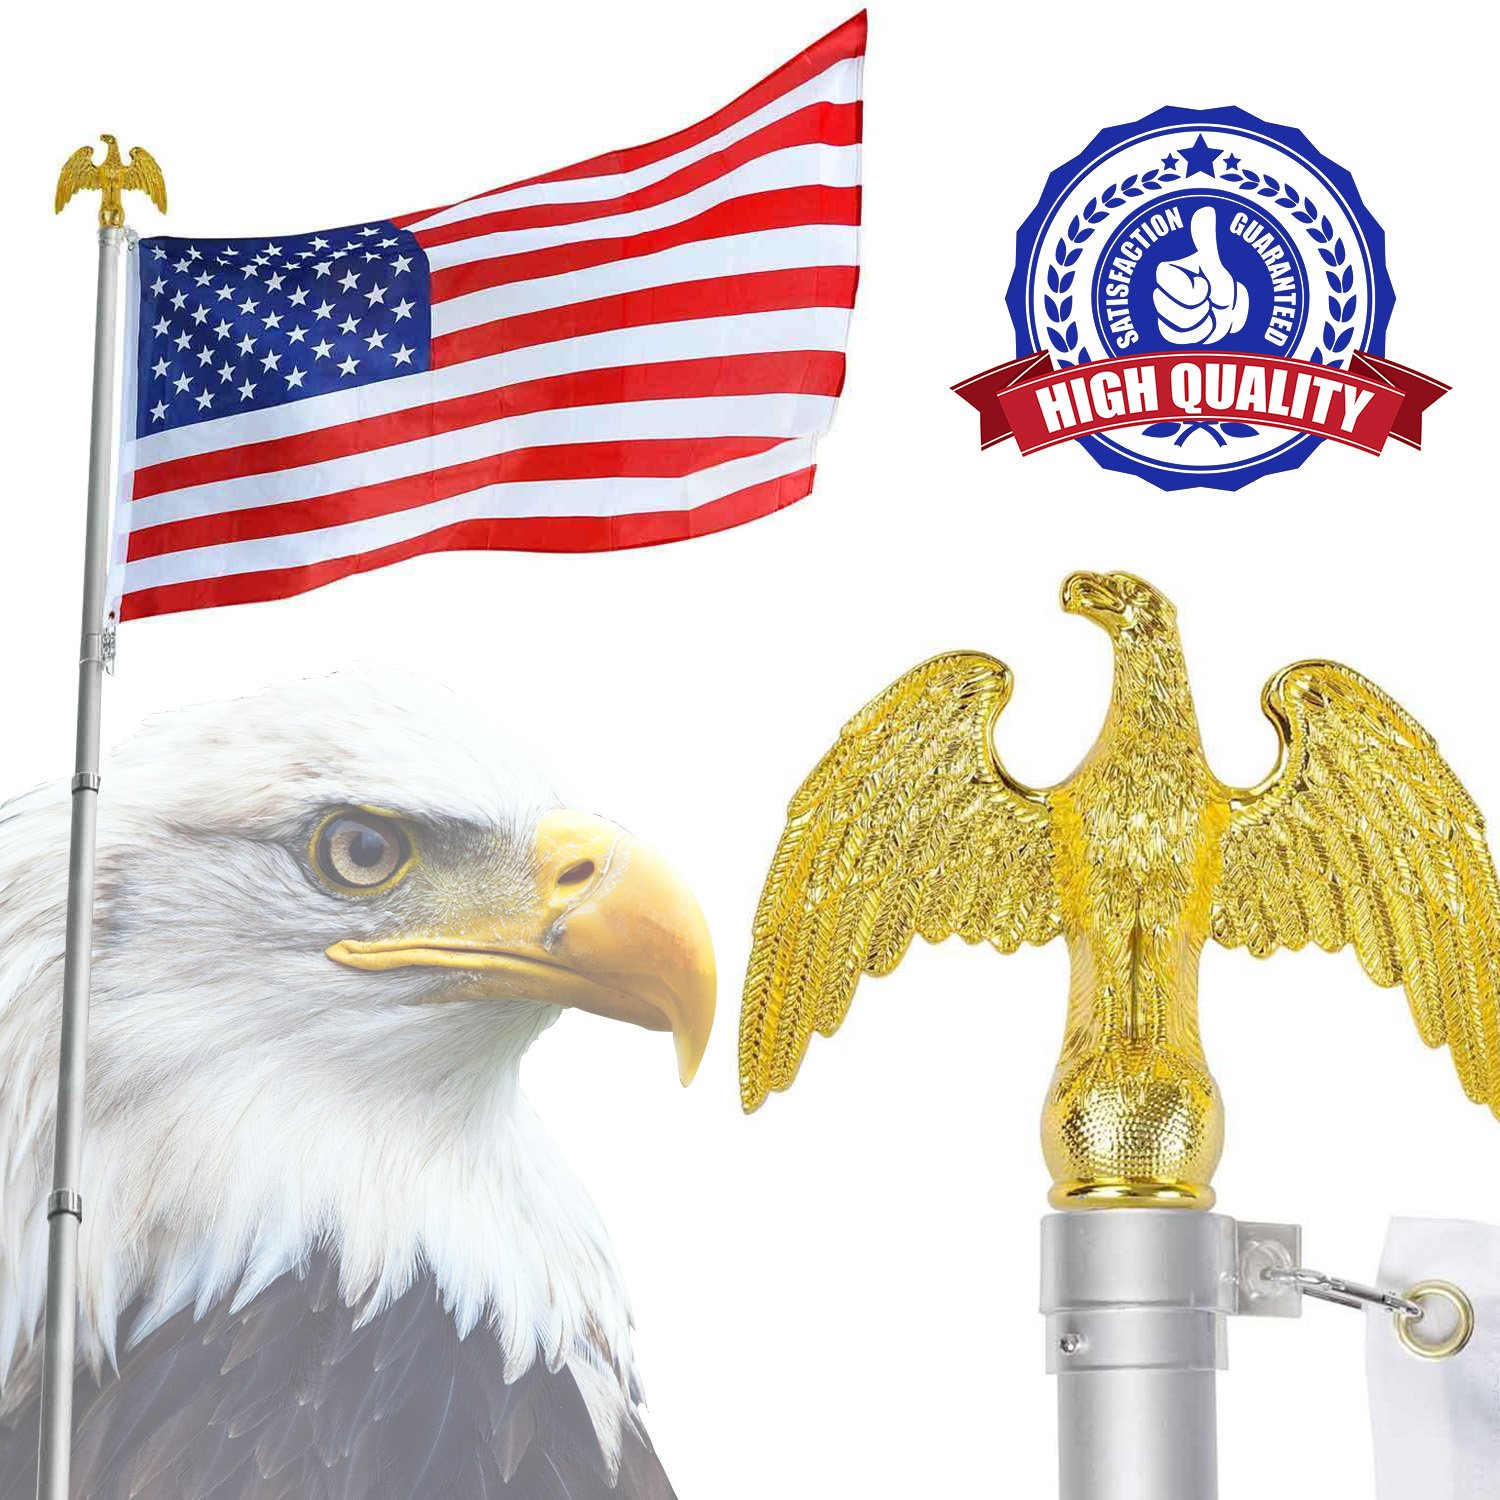 Koval Inc. アルミ伸縮式 旗竿キット 米国旗付き。 Finial Gold Eagle Flag Pole Top B06XT635N6 12617 Finial Gold Eagle Flag Pole Top